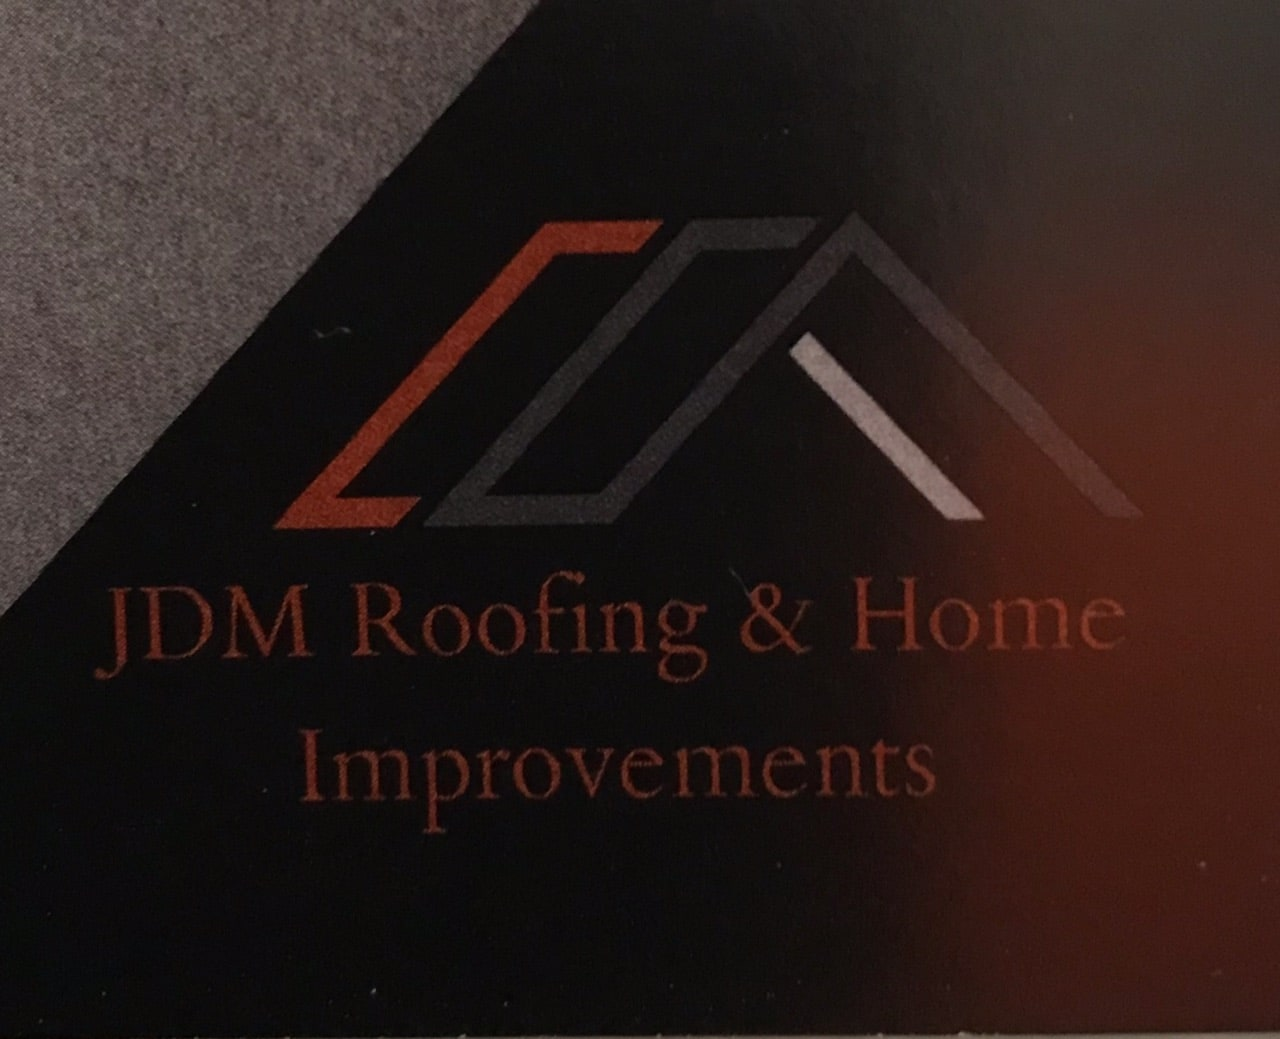 JDM Roofing & Home Improvements